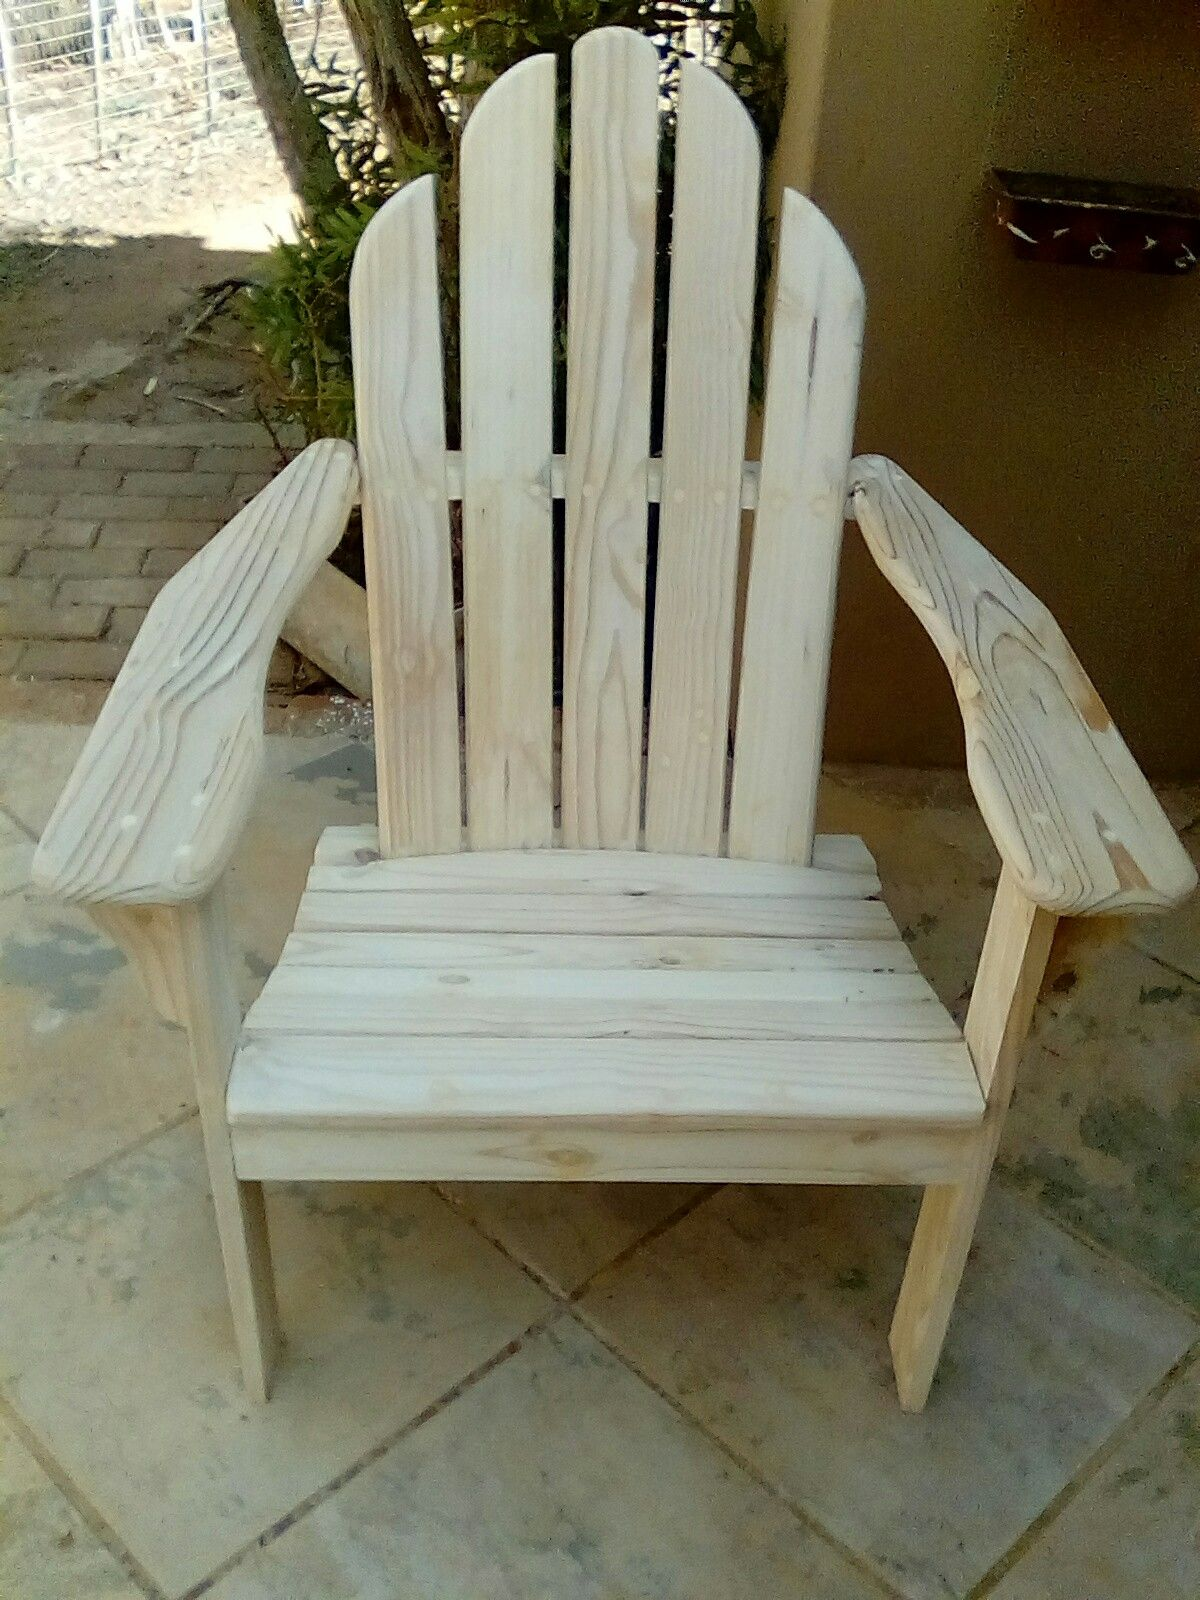 Phenomenal Adirondack C Adirondack Chairs For Only R920 The Best Gmtry Best Dining Table And Chair Ideas Images Gmtryco